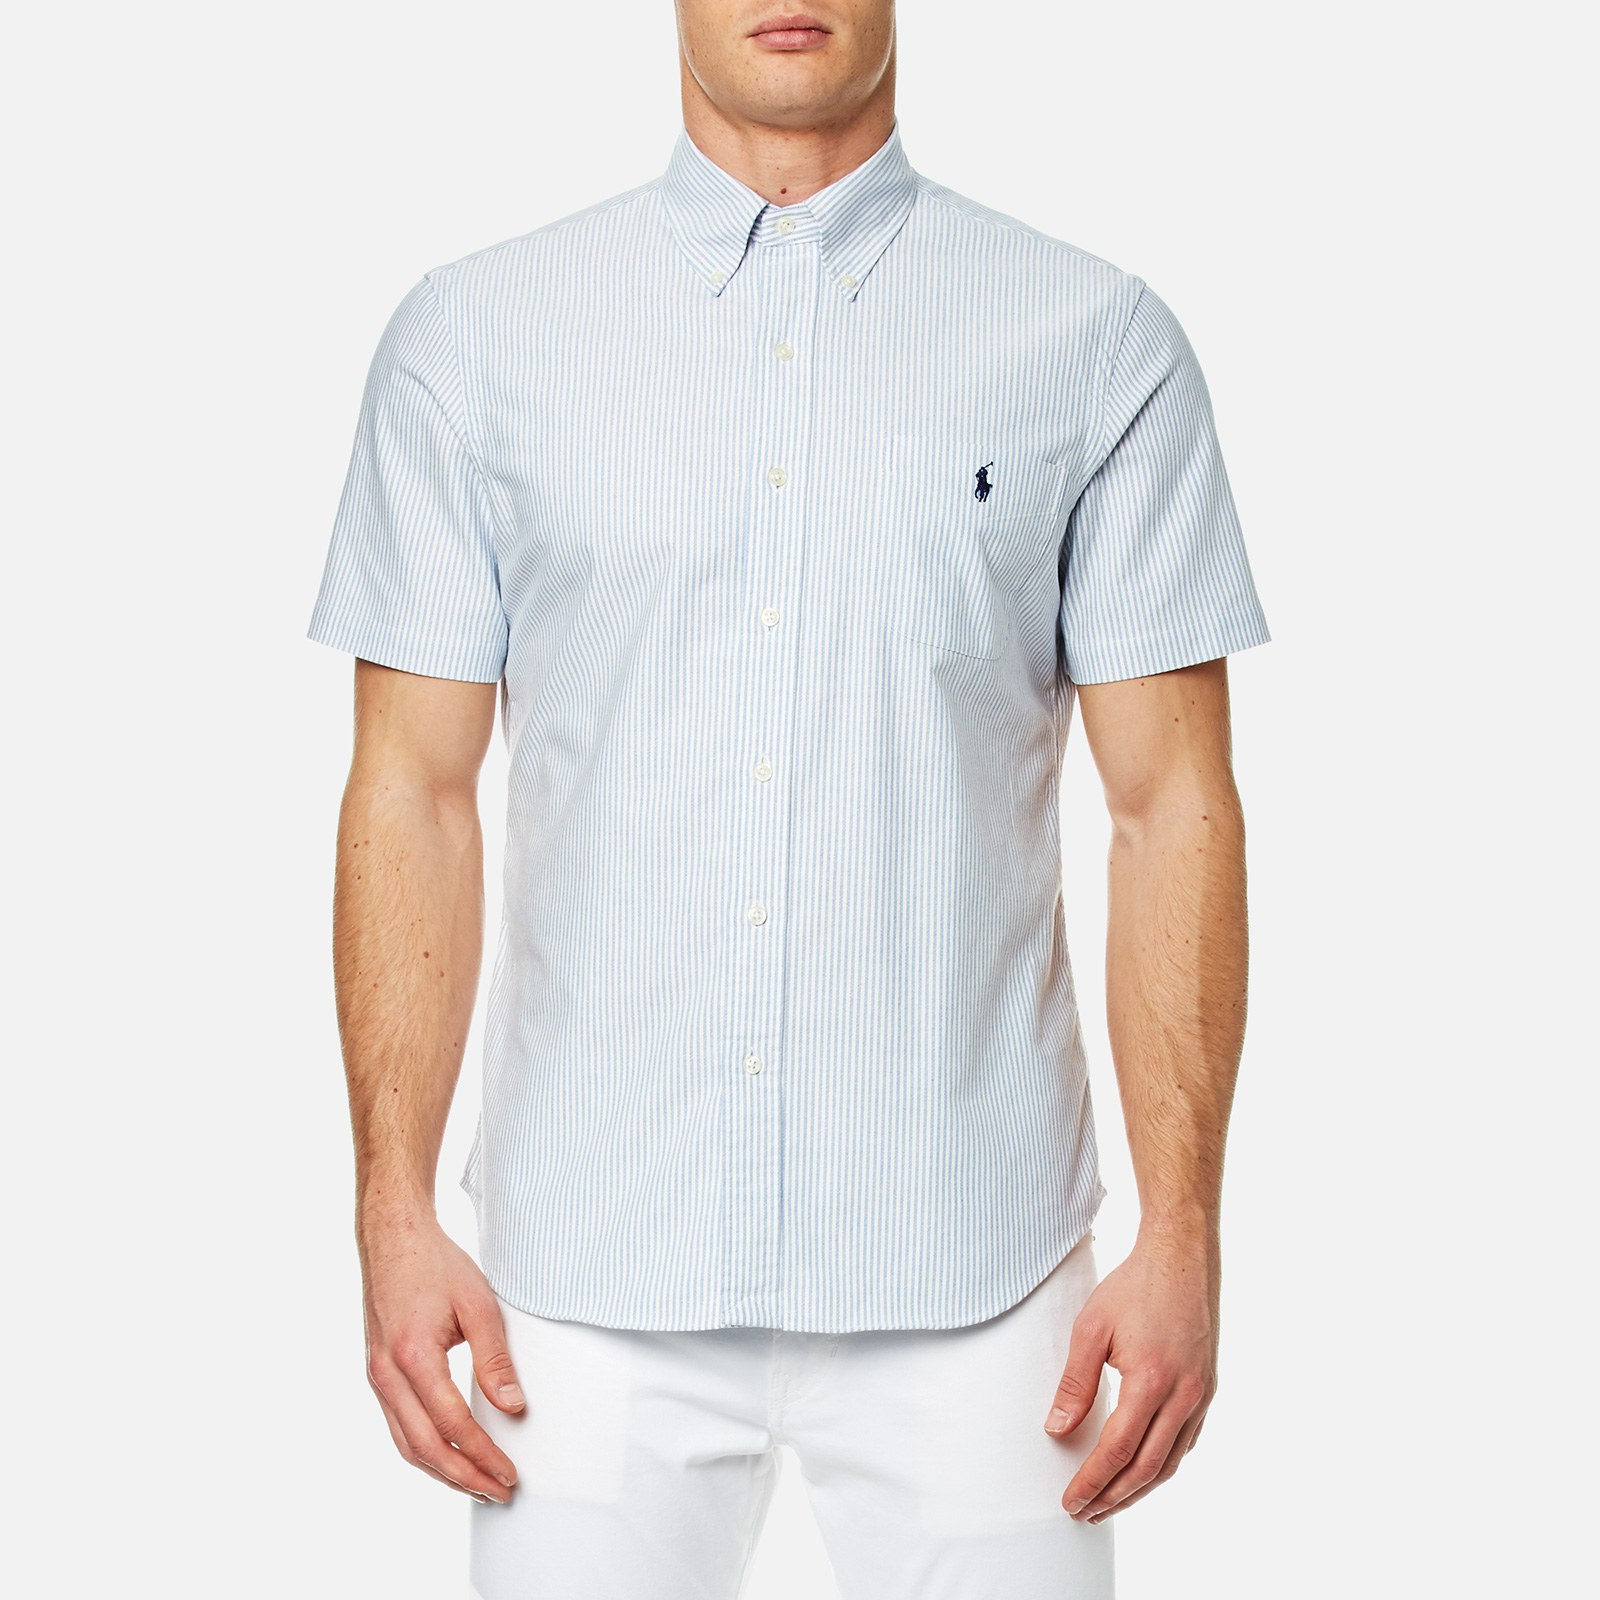 8ff307874 Polo Ralph Lauren Men's Short Sleeve Button Down Shirt - Blue/White - Free  UK Delivery over £50